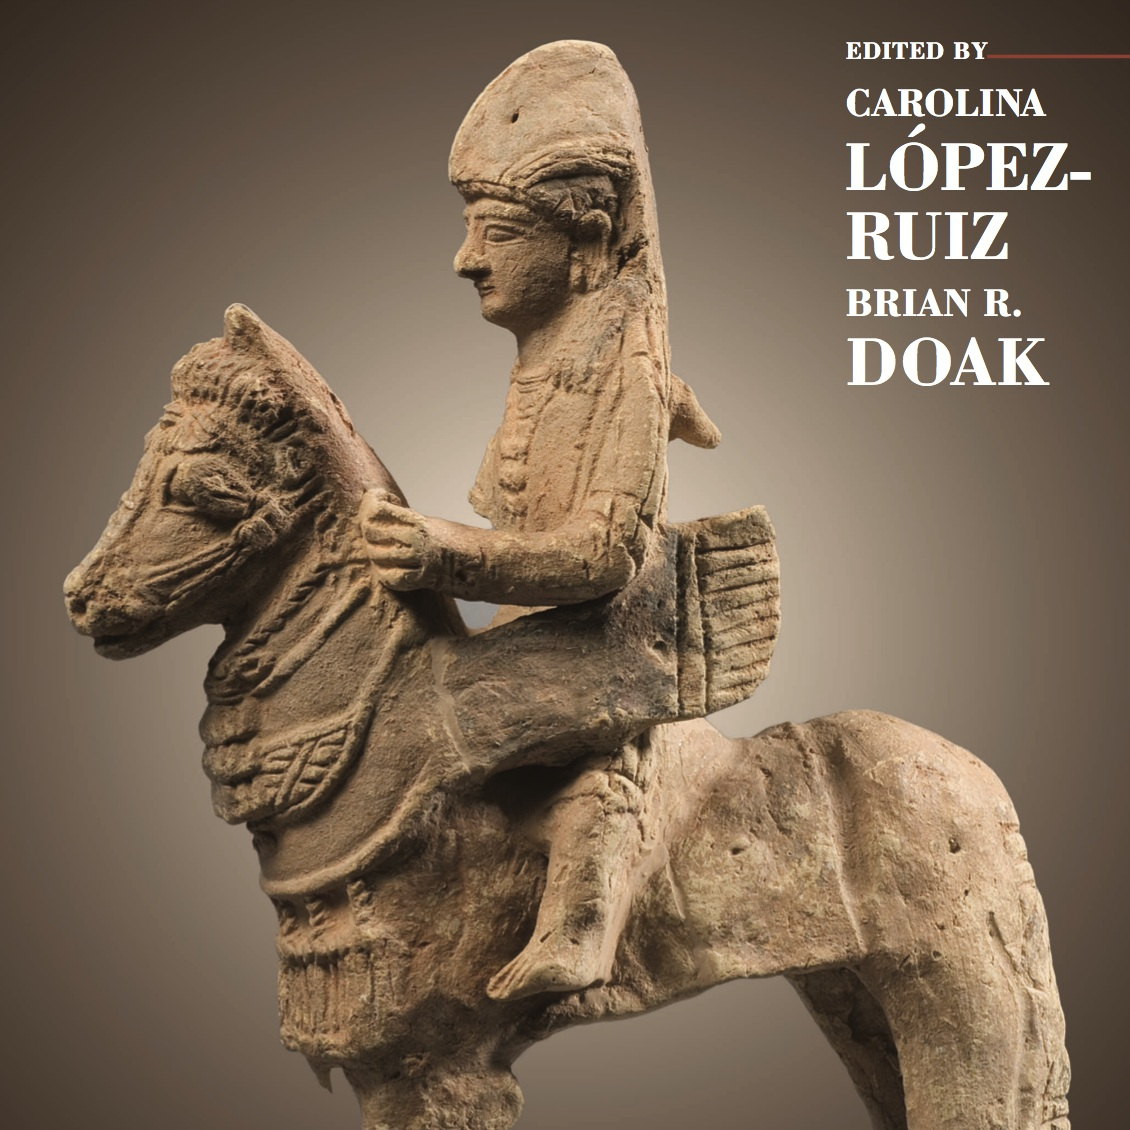 Co-edited with Carolina López-Ruiz,   The Oxford Handbook of the Phoenician and Punic Mediterranean   (Oxford: Oxford University Press, 2019)